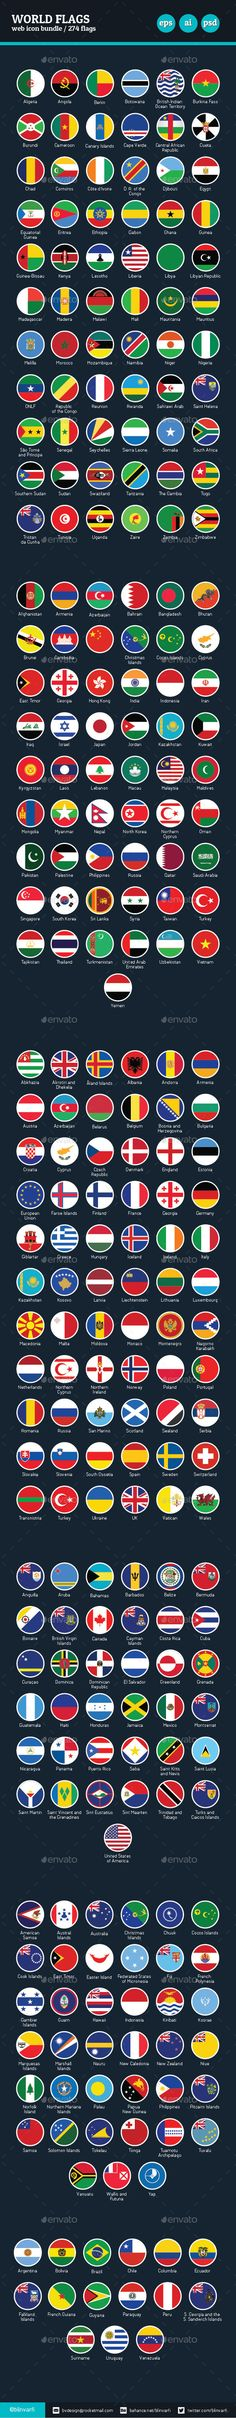 Flags of the World - Vector Icon Bundle